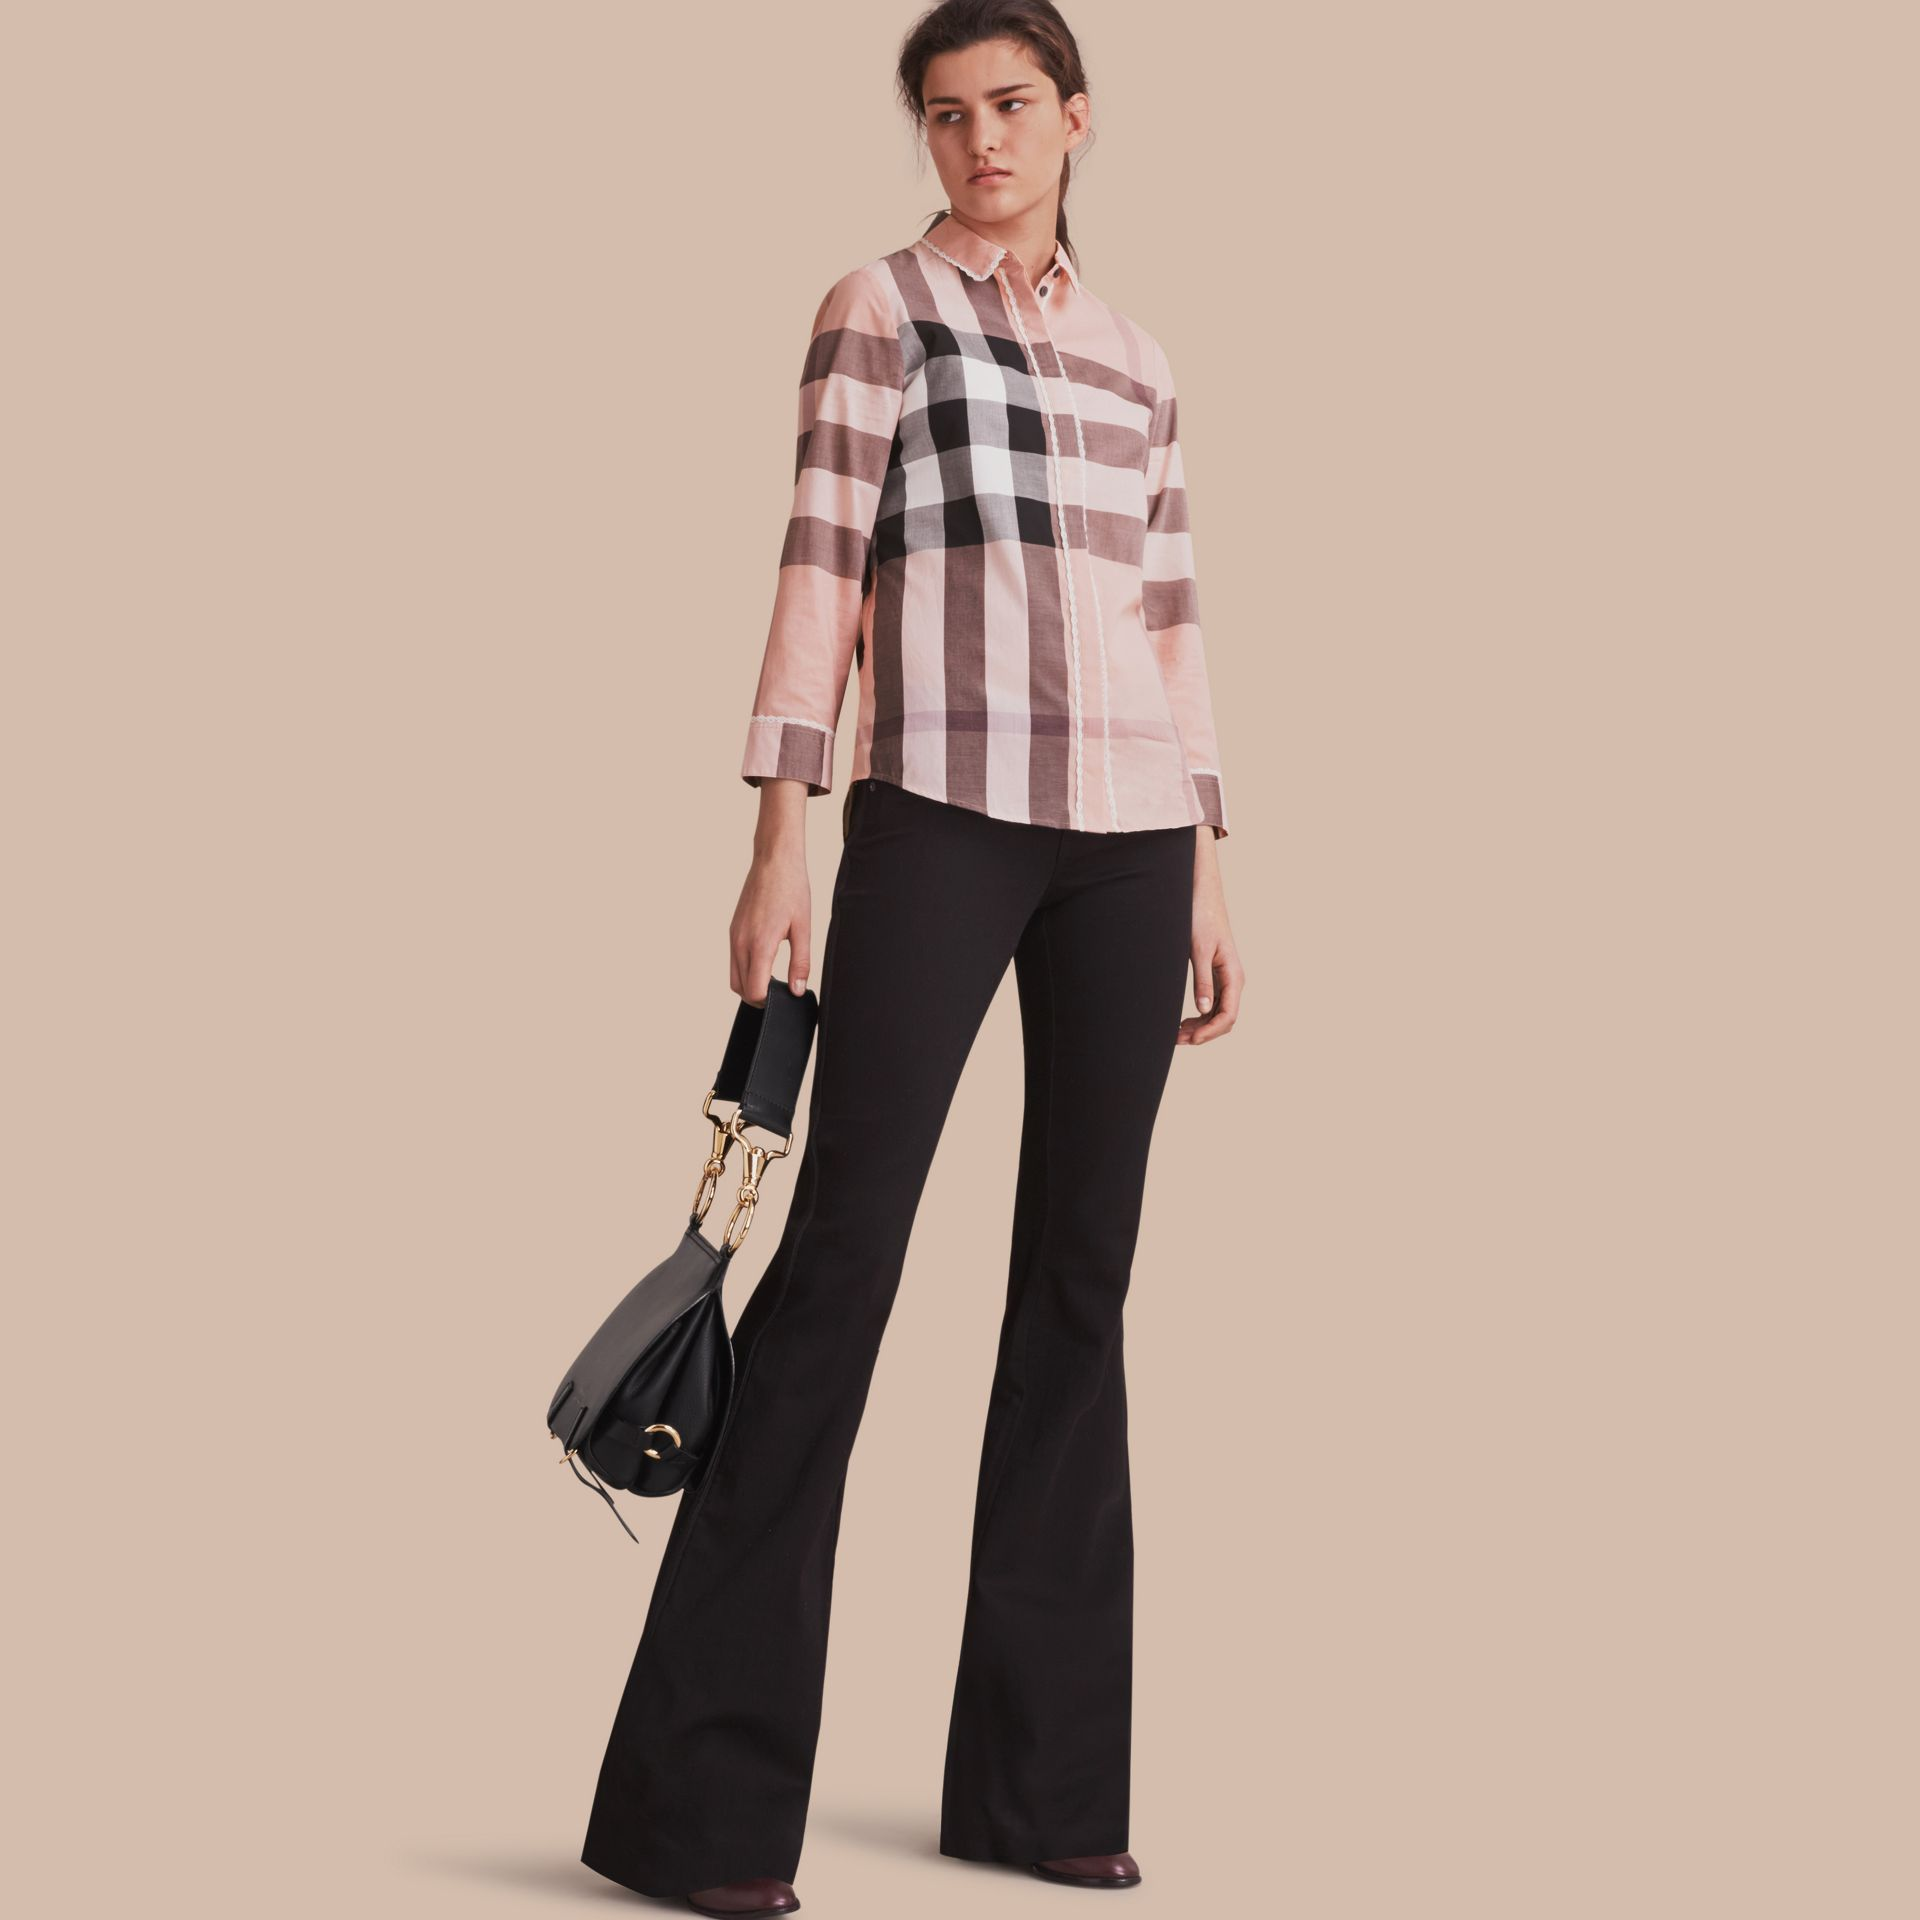 Lace Trim Check Cotton Shirt in Antique Pink - Women | Burberry Canada - gallery image 1